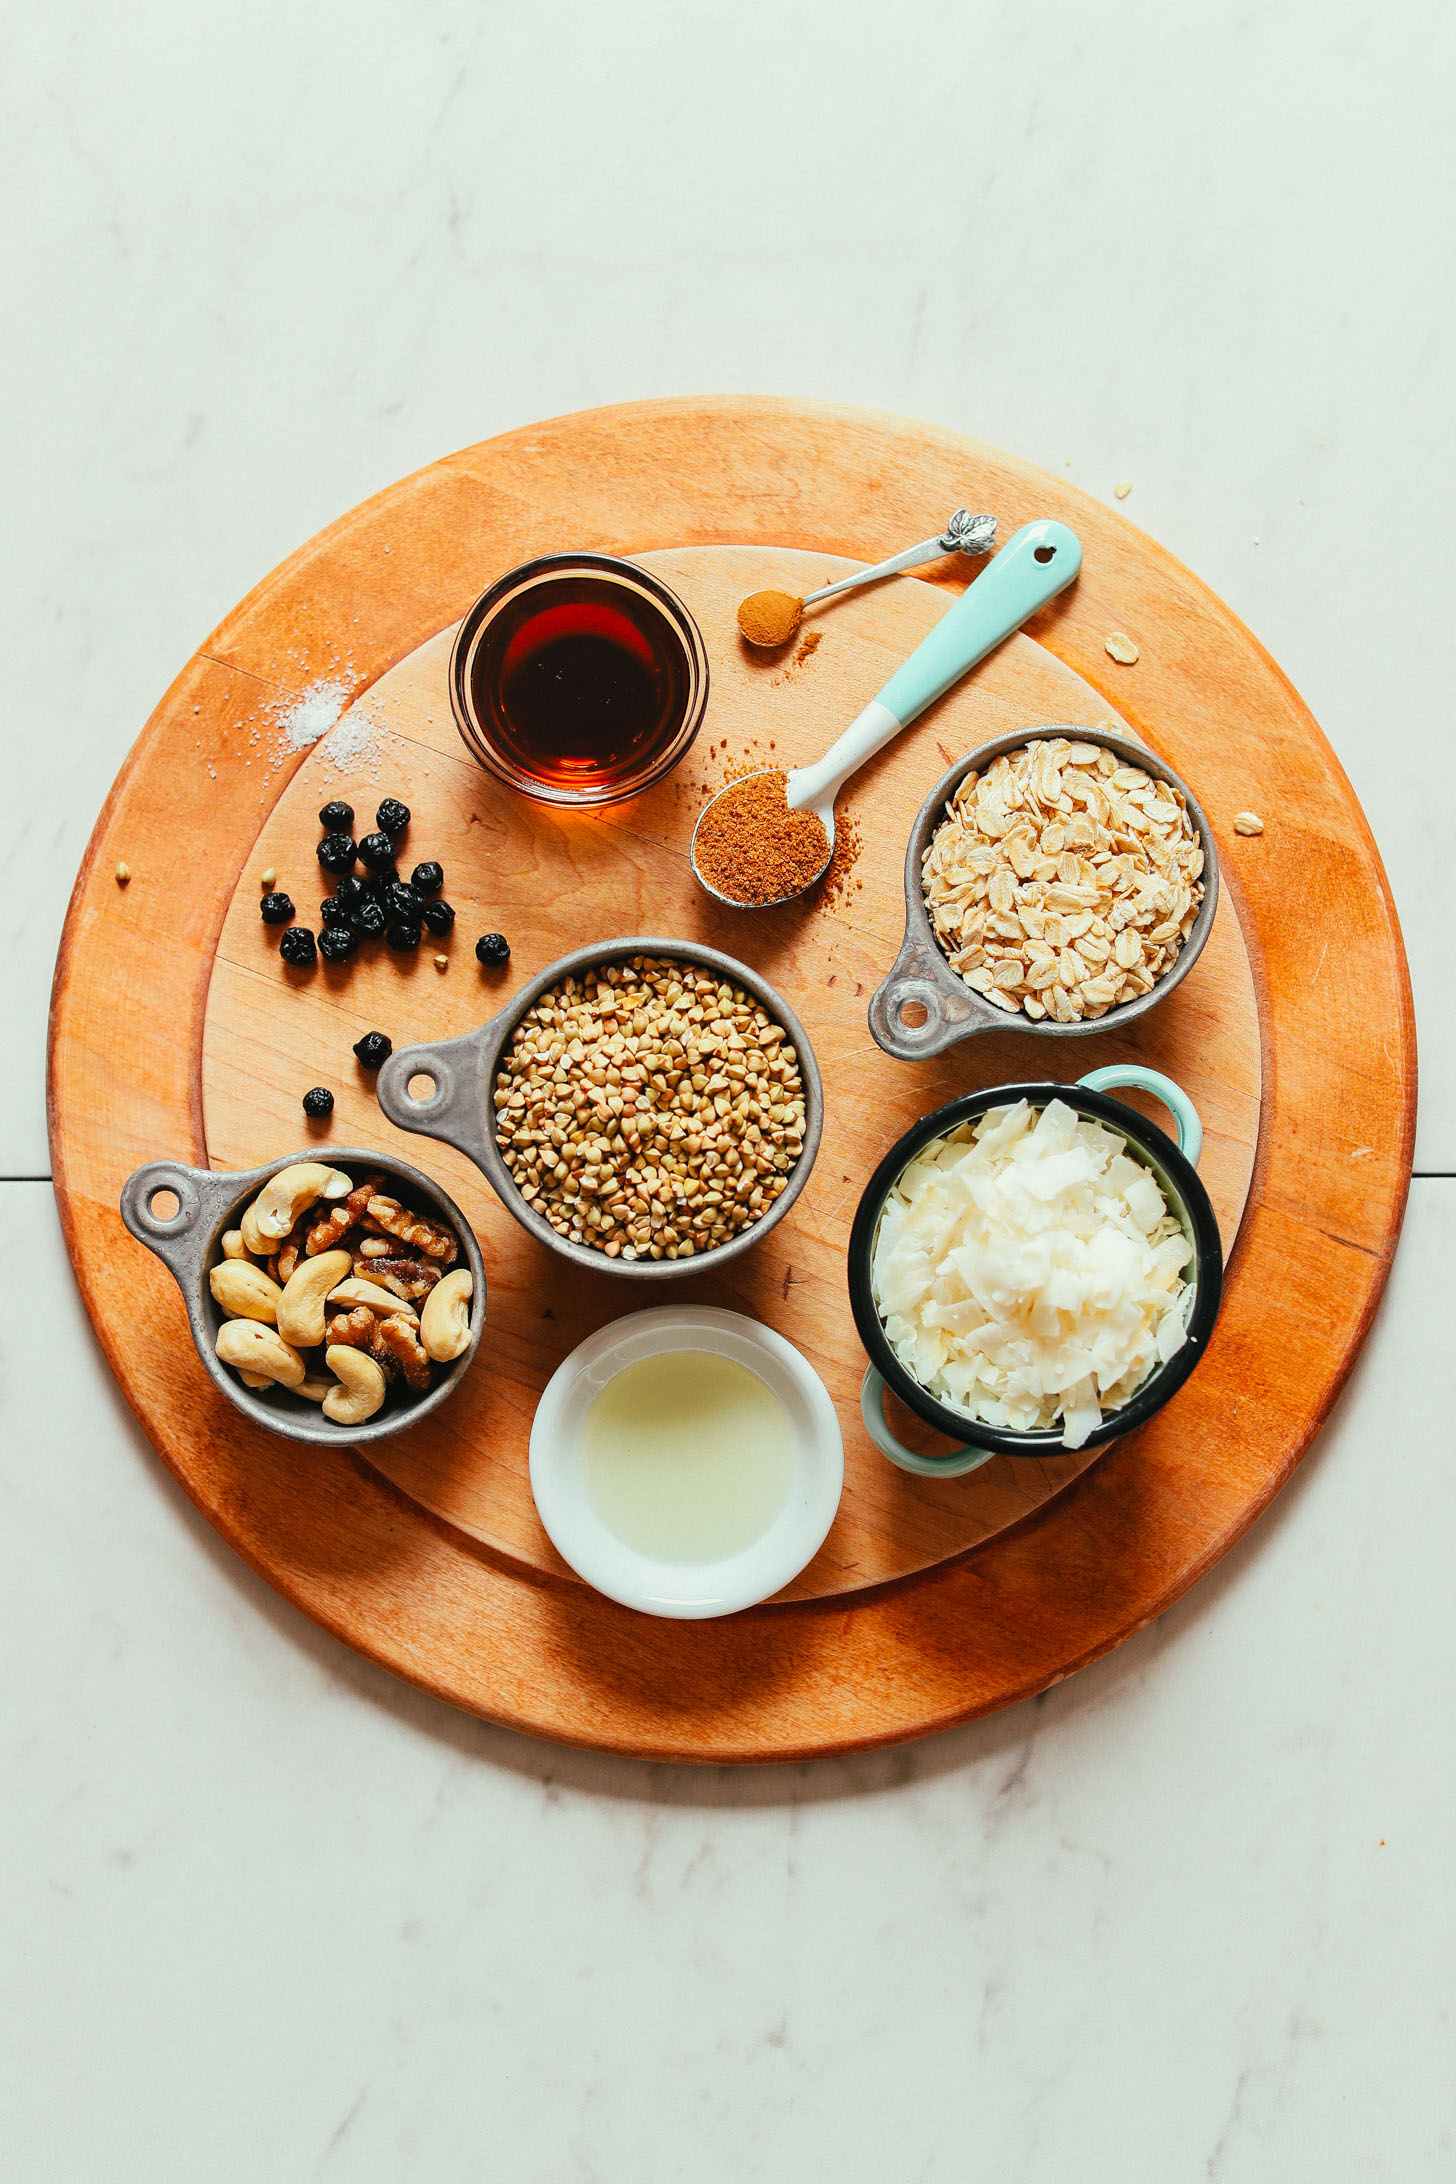 Wood board with ingredients for making gluten-free vegan Easy Buckwheat Granola